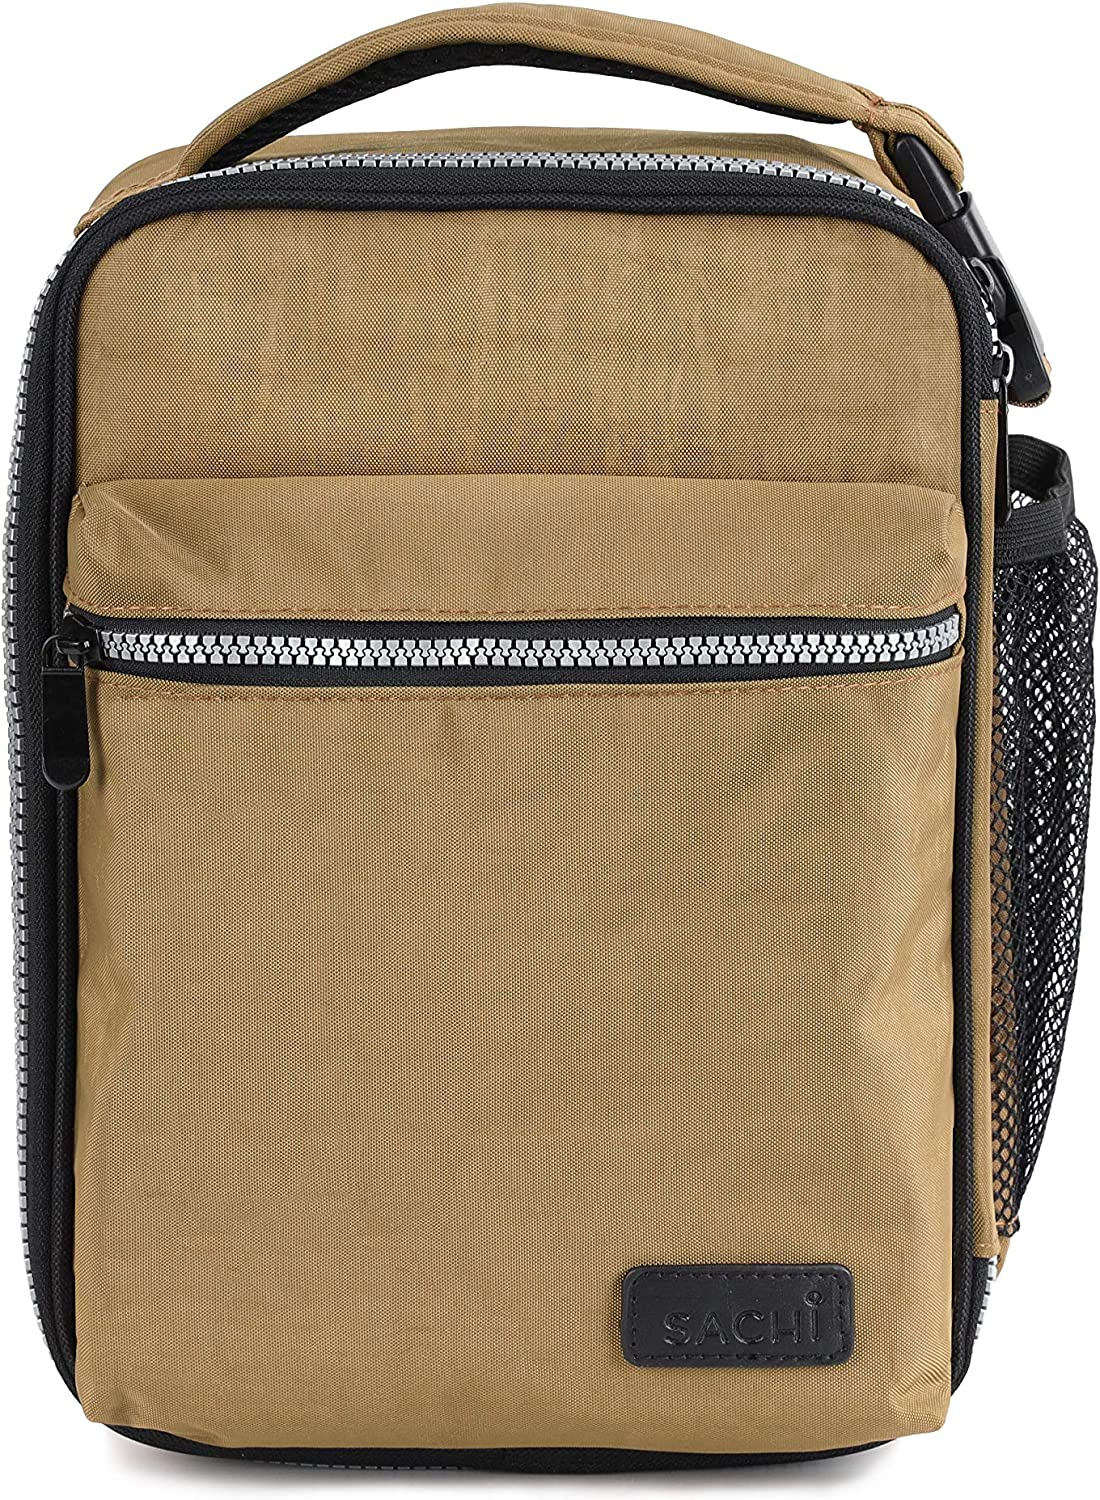 SACHI Explorer Durable Insulated Lunch Tote, Lunchbox with Heavy Duty Zipper, Large Lunch Bag, for Men with Hands Free Buckle Handle Loncheras Khaki